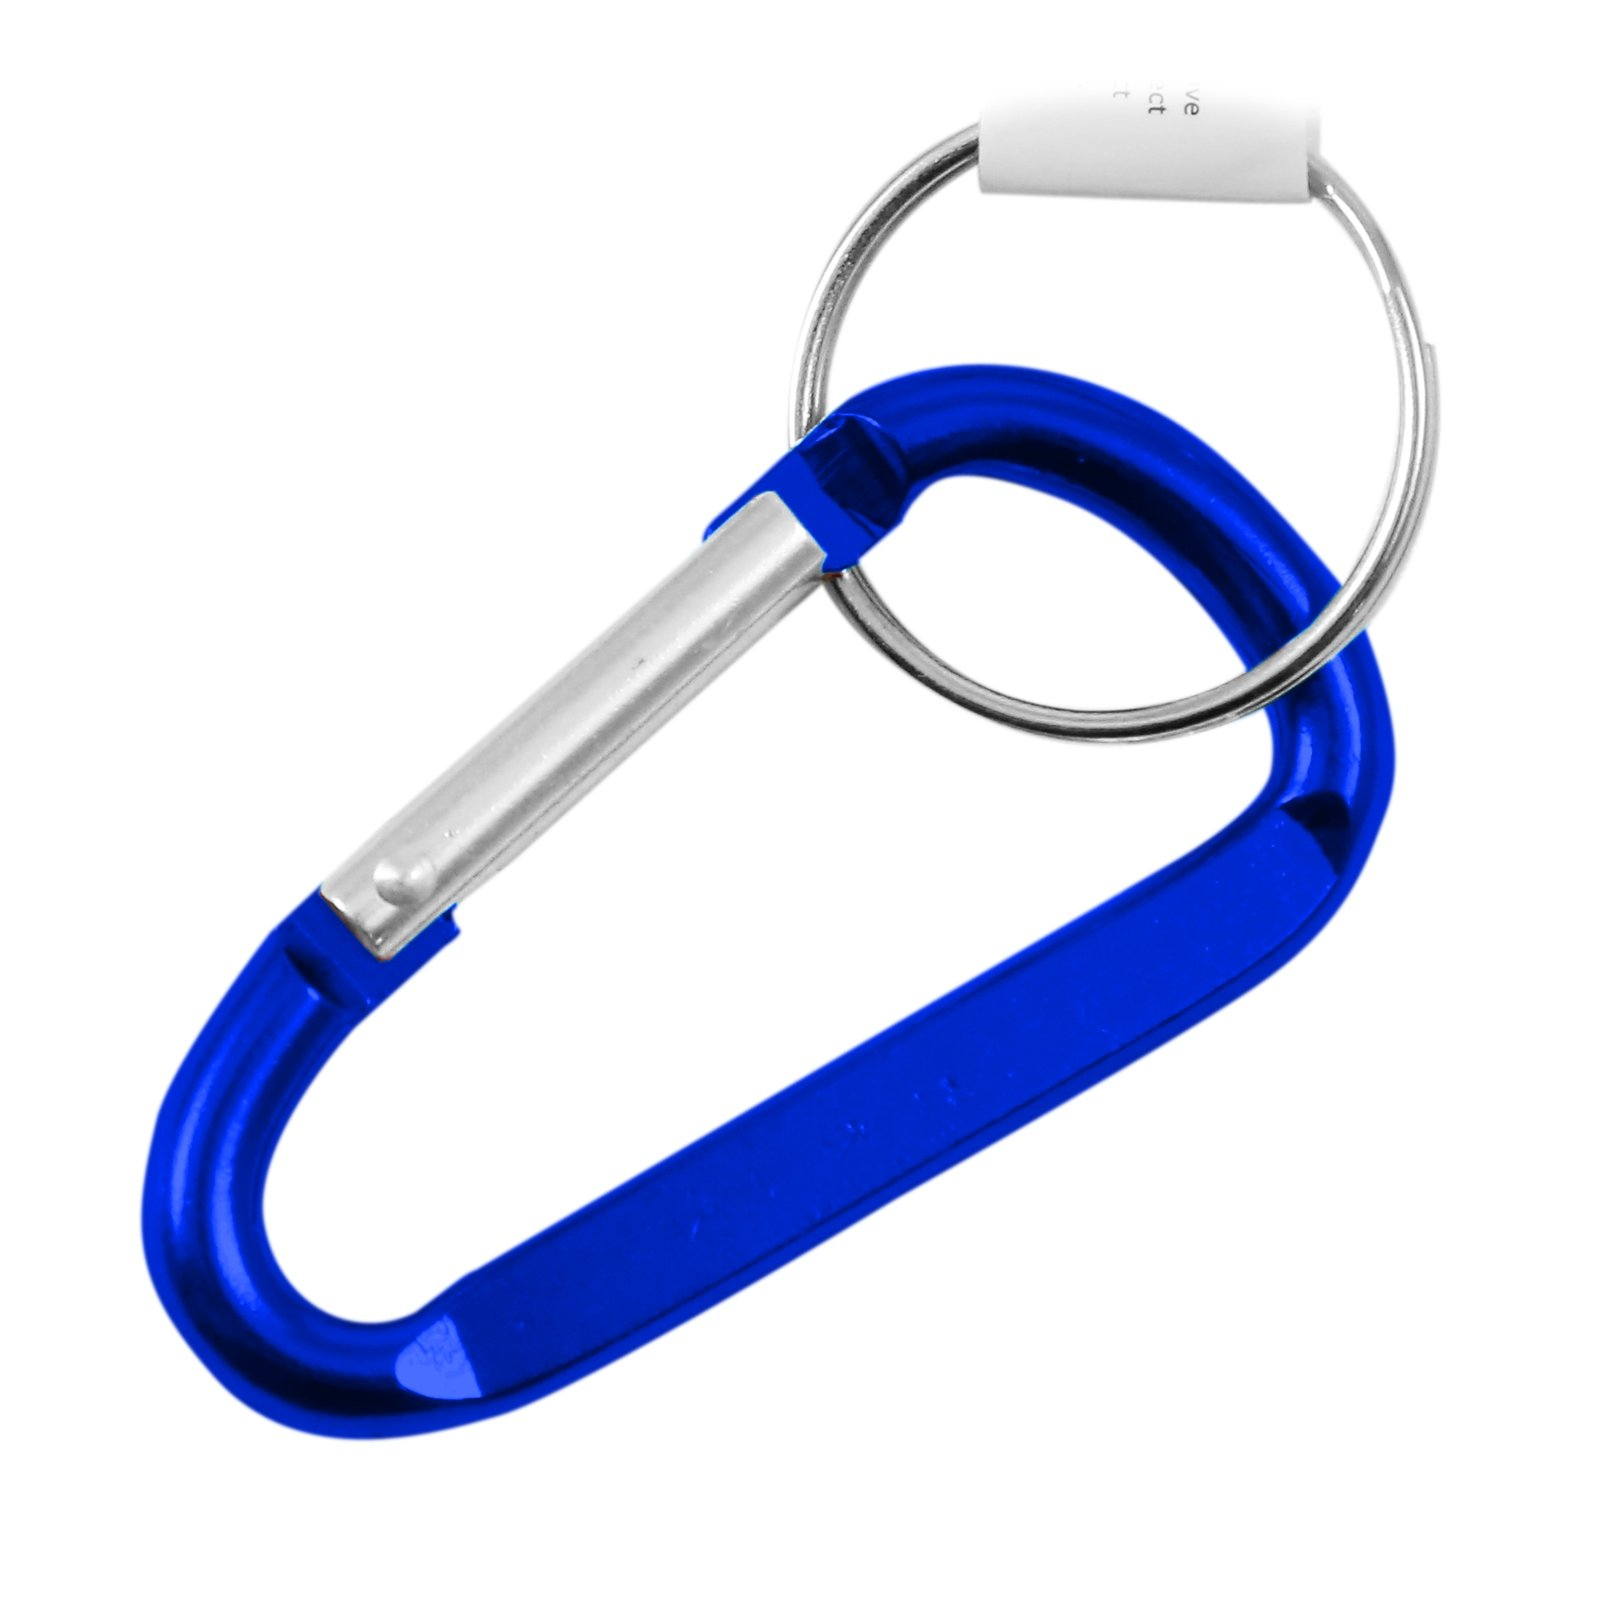 2 Inch Extra Small Carabiner Key Chain - Dark Blue